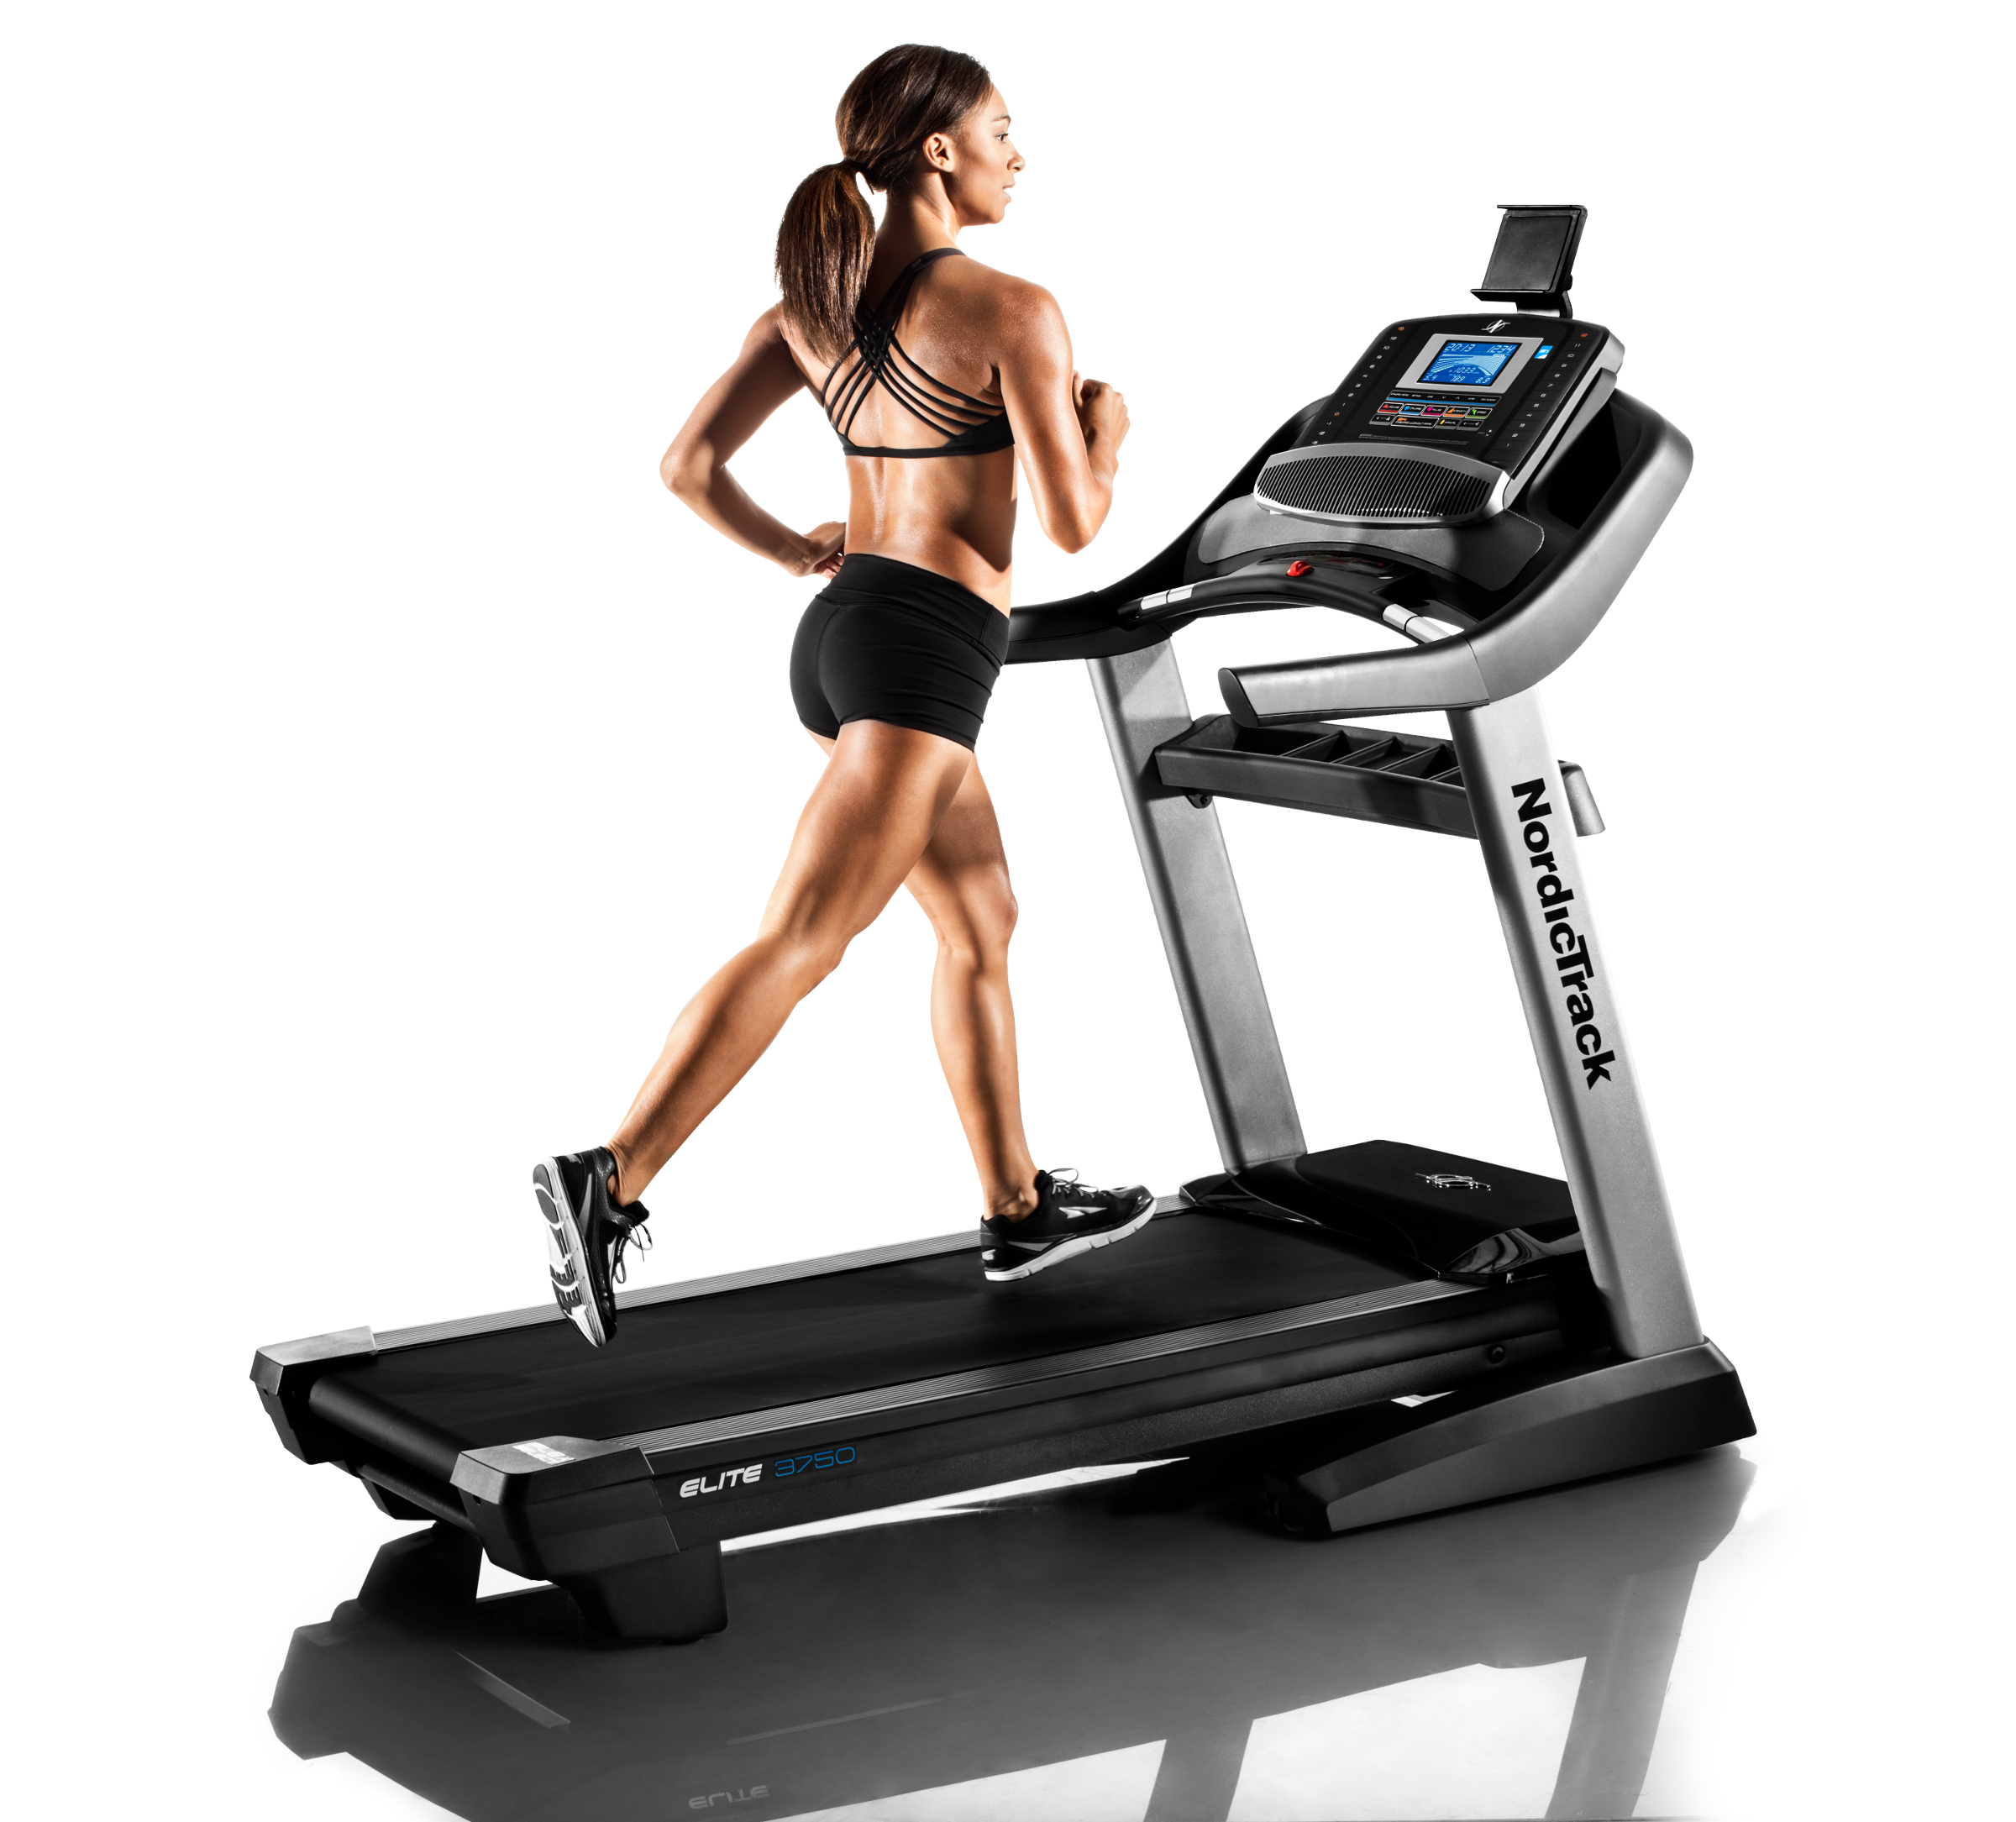 The best treadmills for runners, joggers, and walkers at home